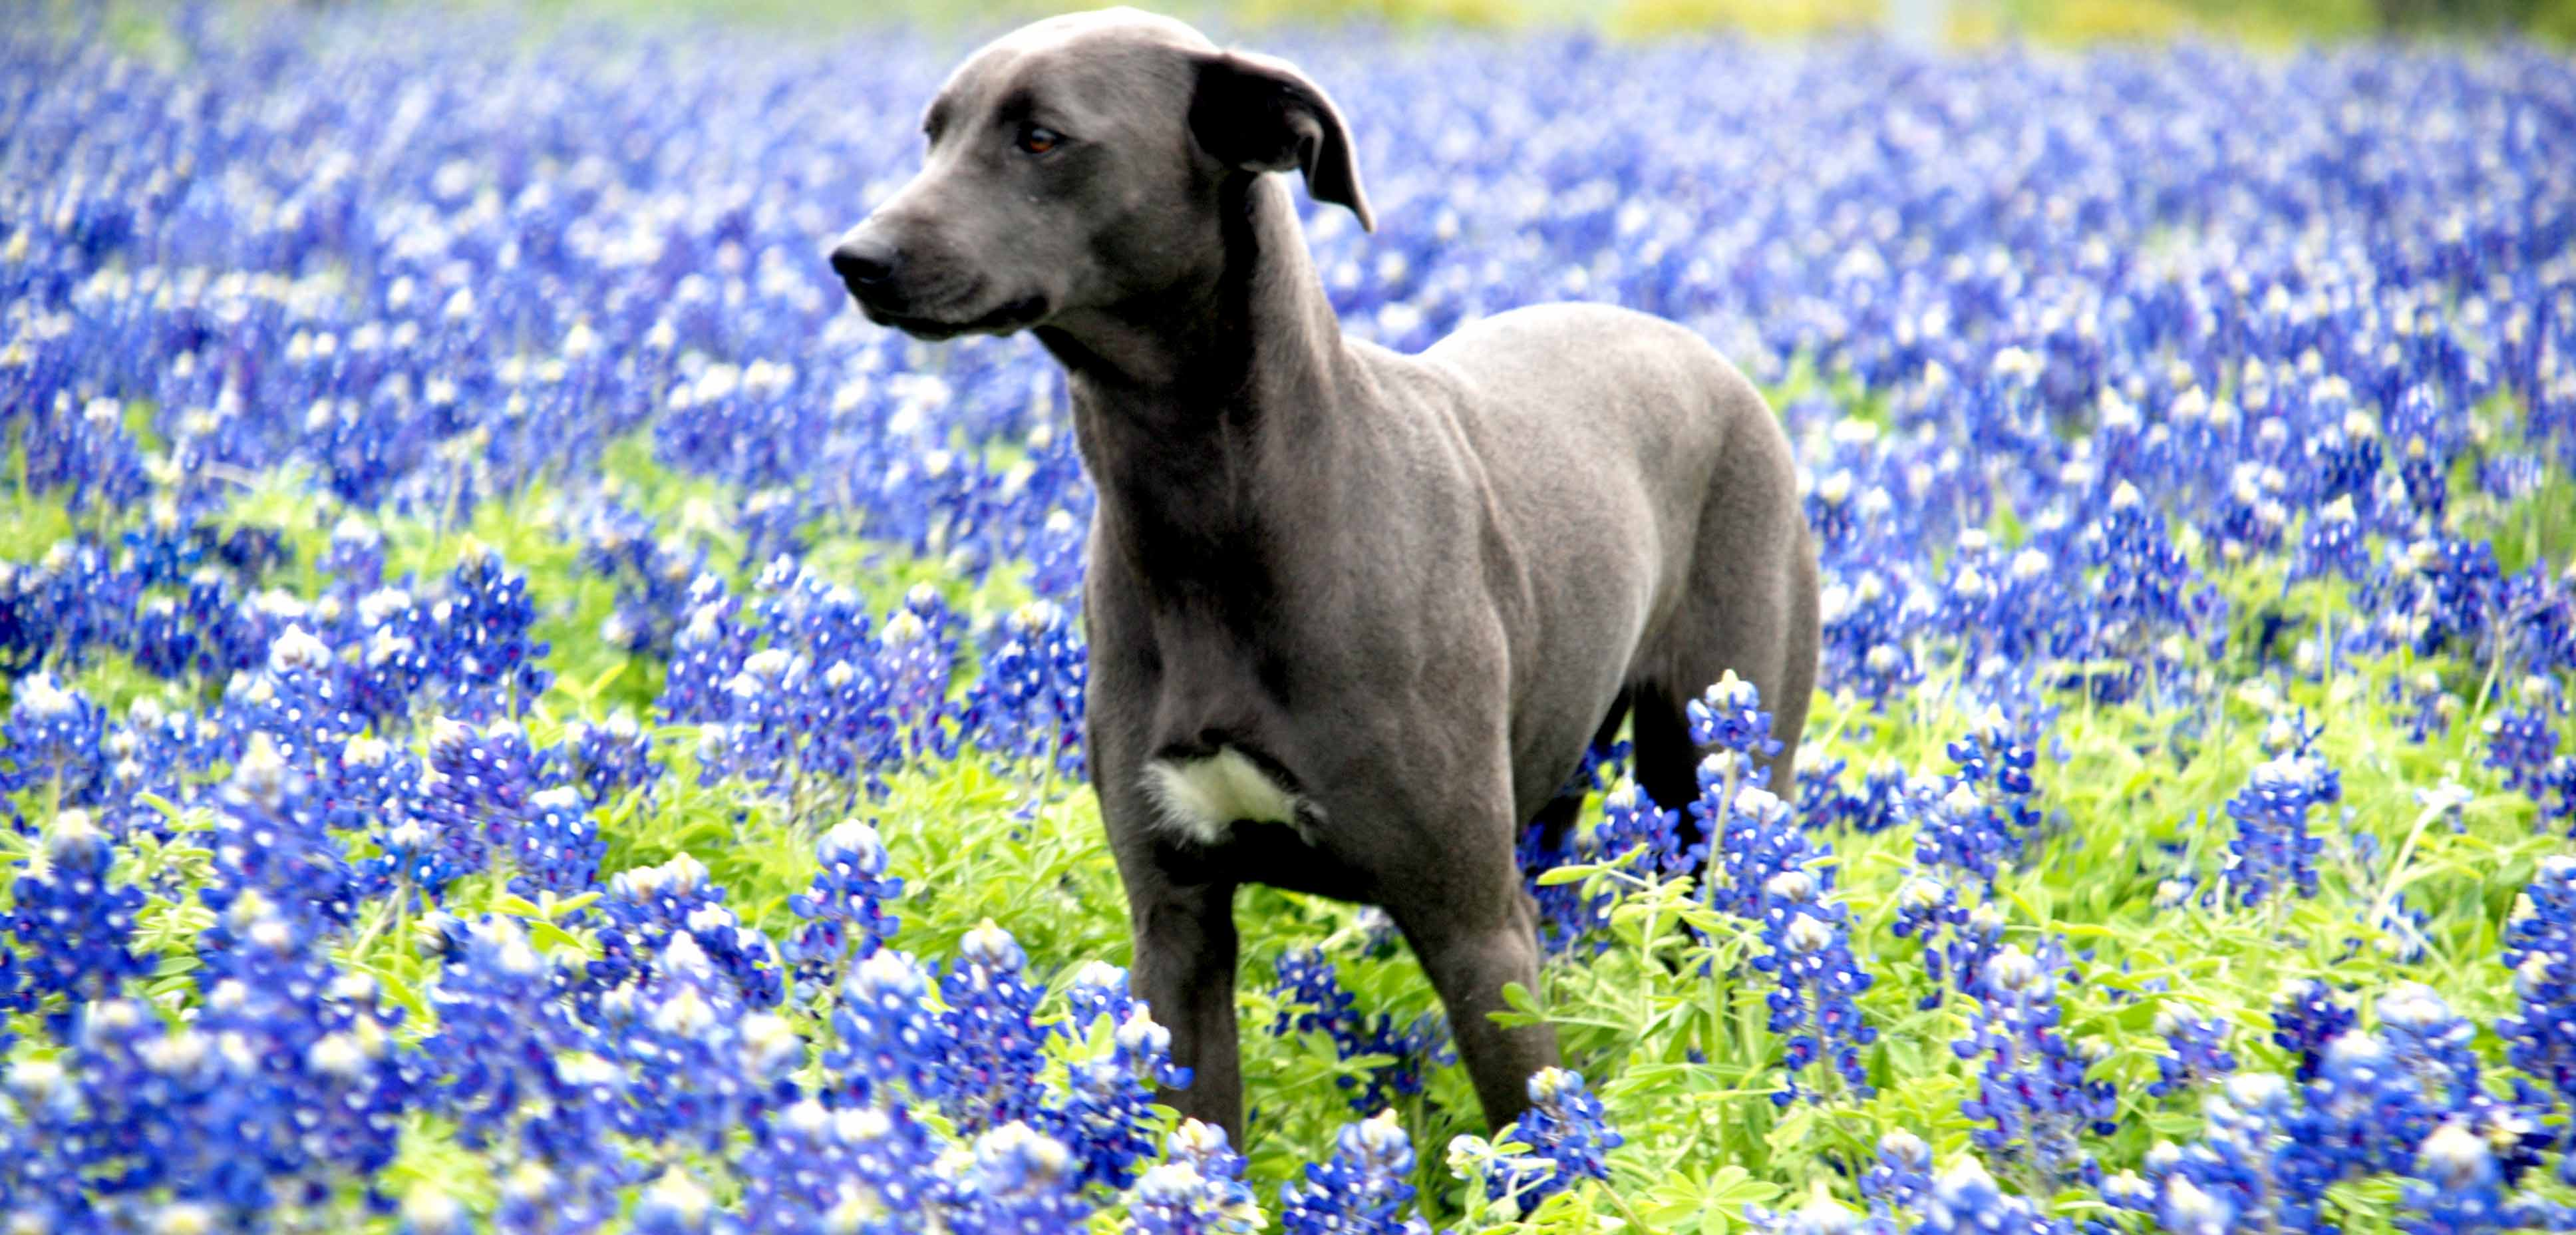 PPR's Sissy in Bluebonnets, Blue Lacy Dog